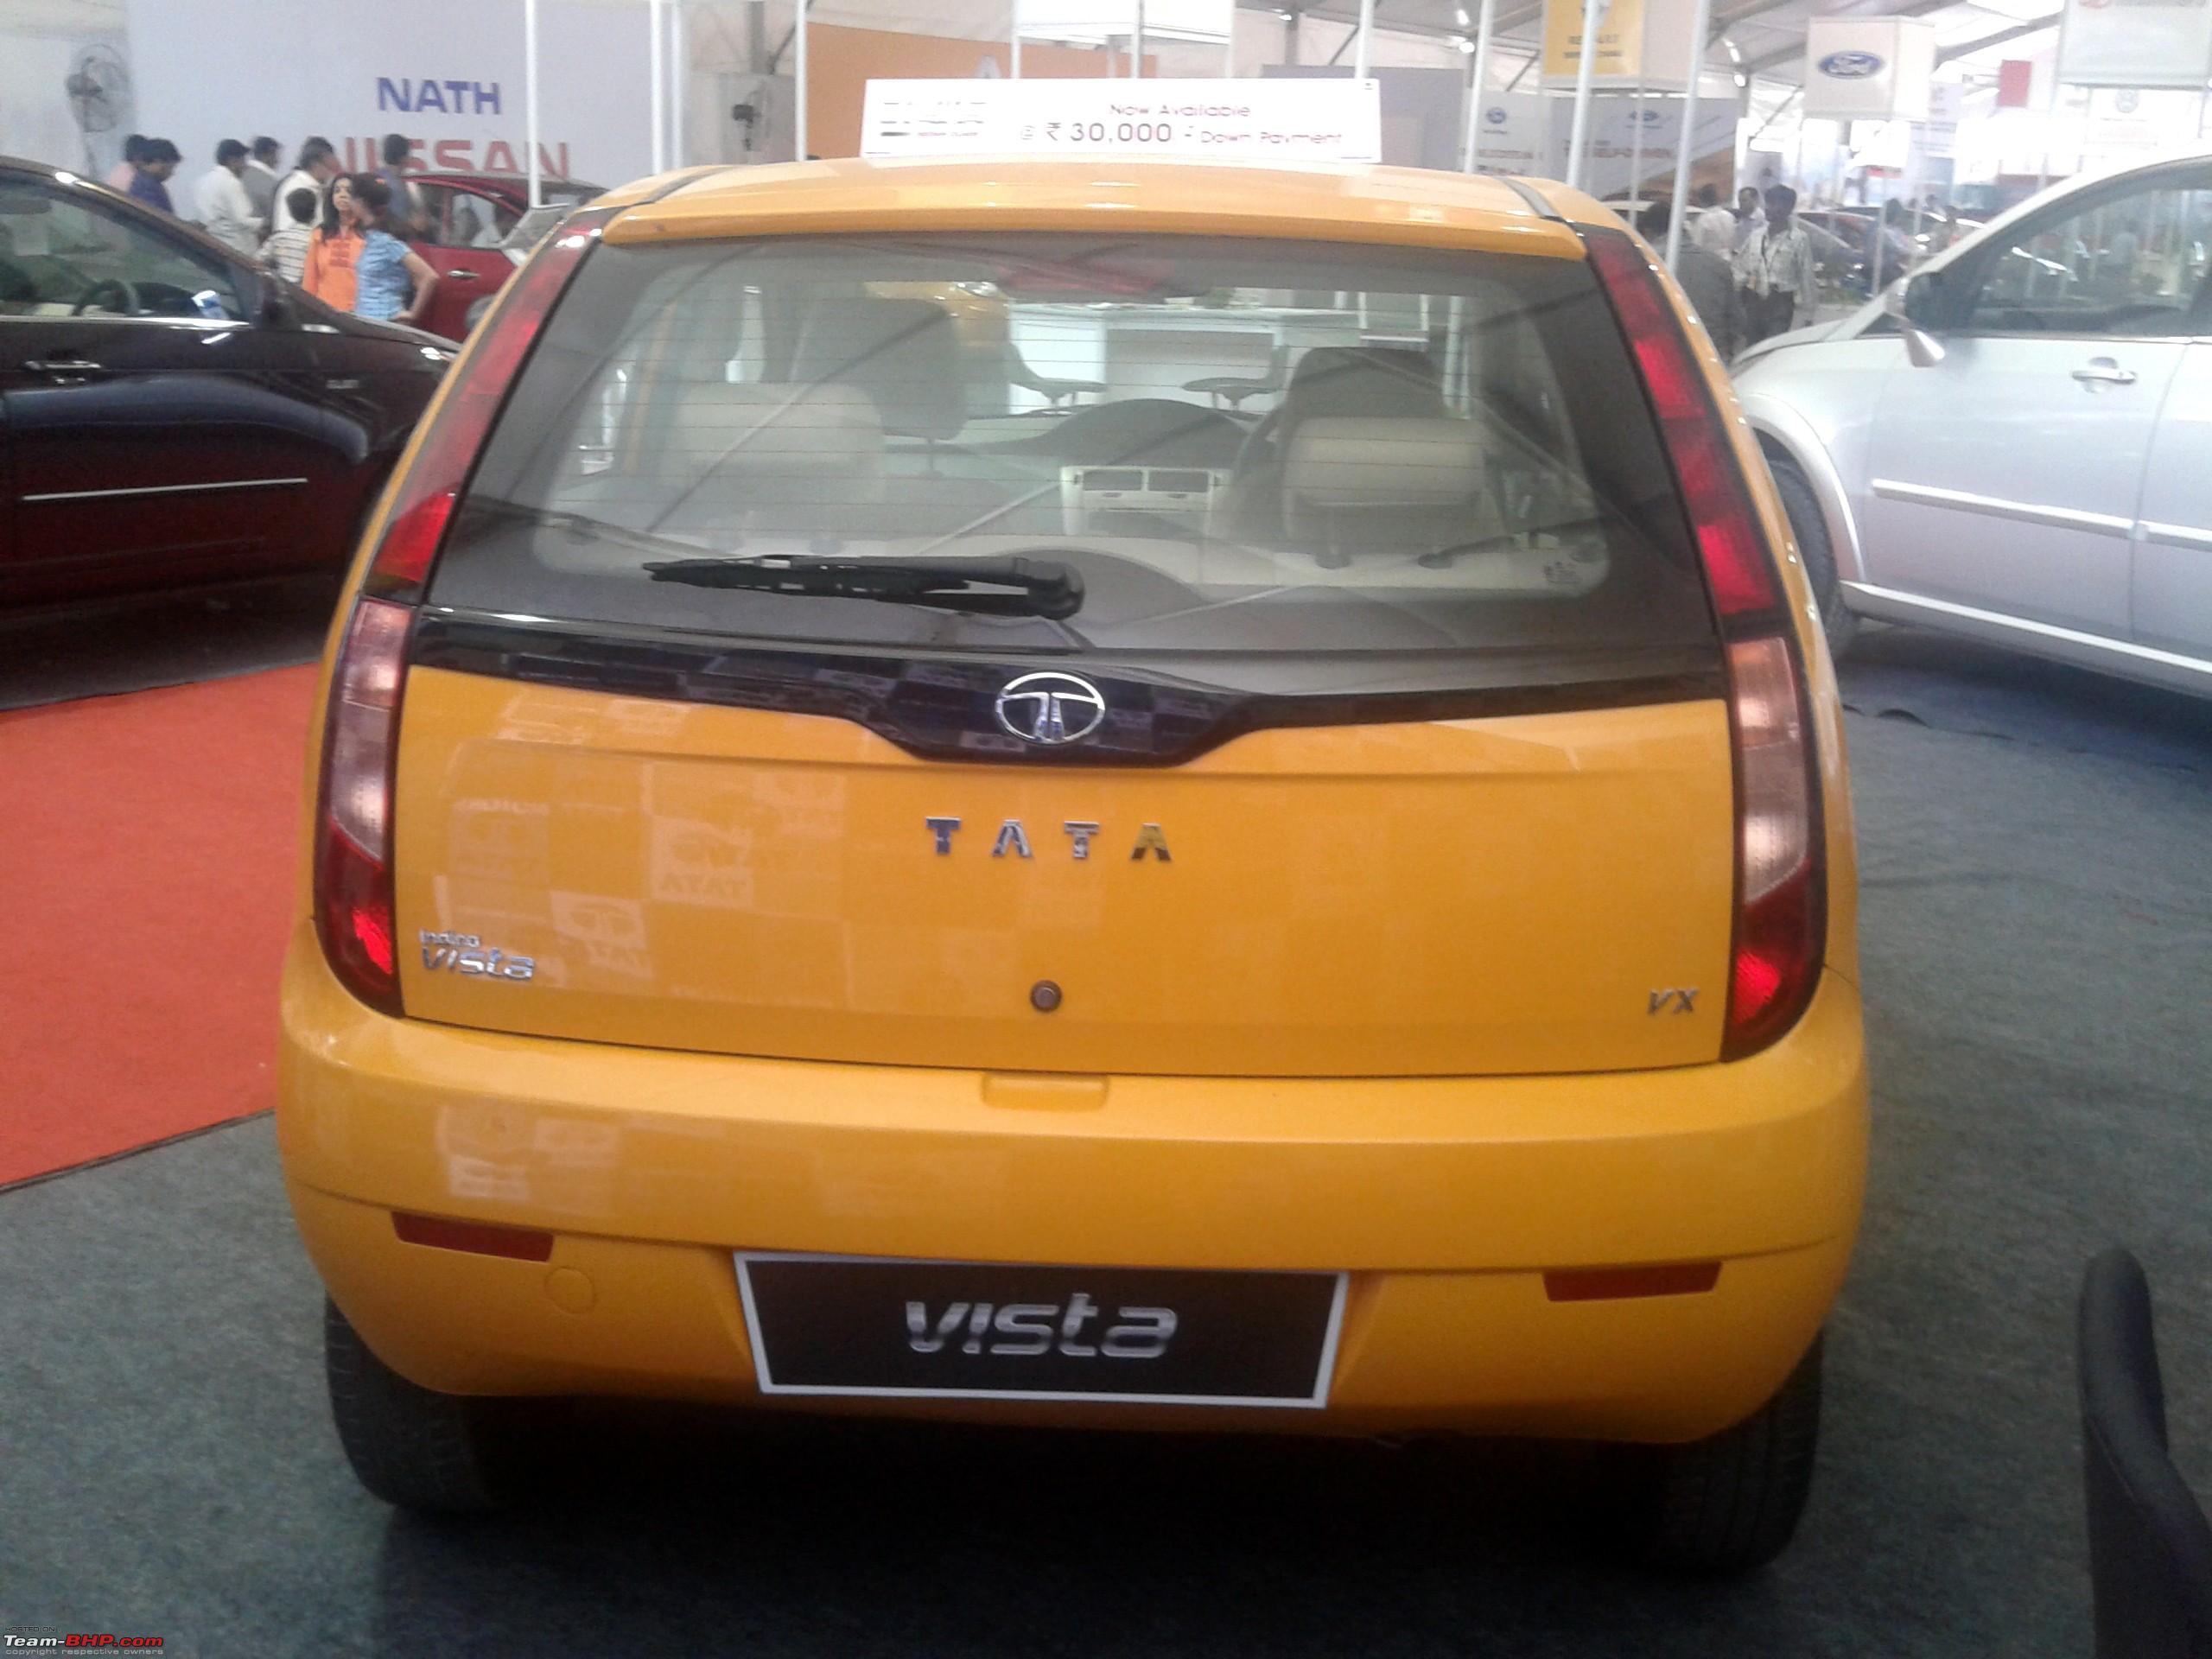 Tata Indica Vista Refresh : Test Drive & Review - Page 7 - Team-